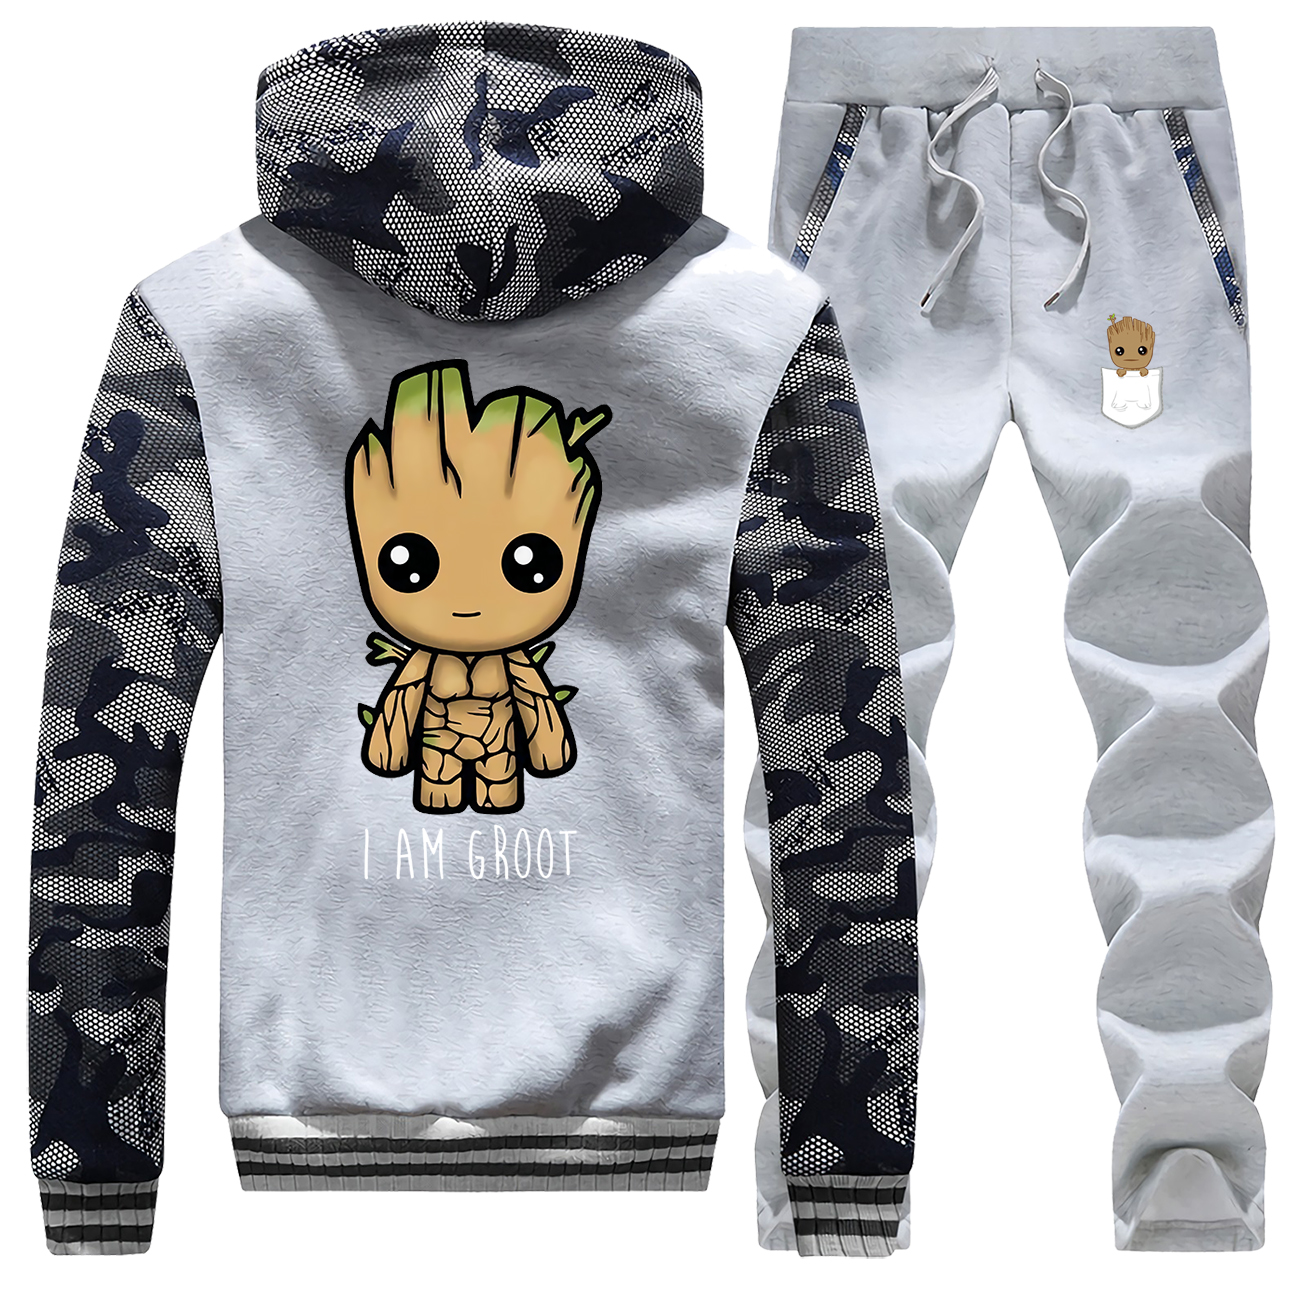 Hot Sale Winter Guardians Of The Galaxy Cartoon Cute Groot Camouflage Sportswear Fashion Hoodie Warm Jacket+Pants 2 Piece Set